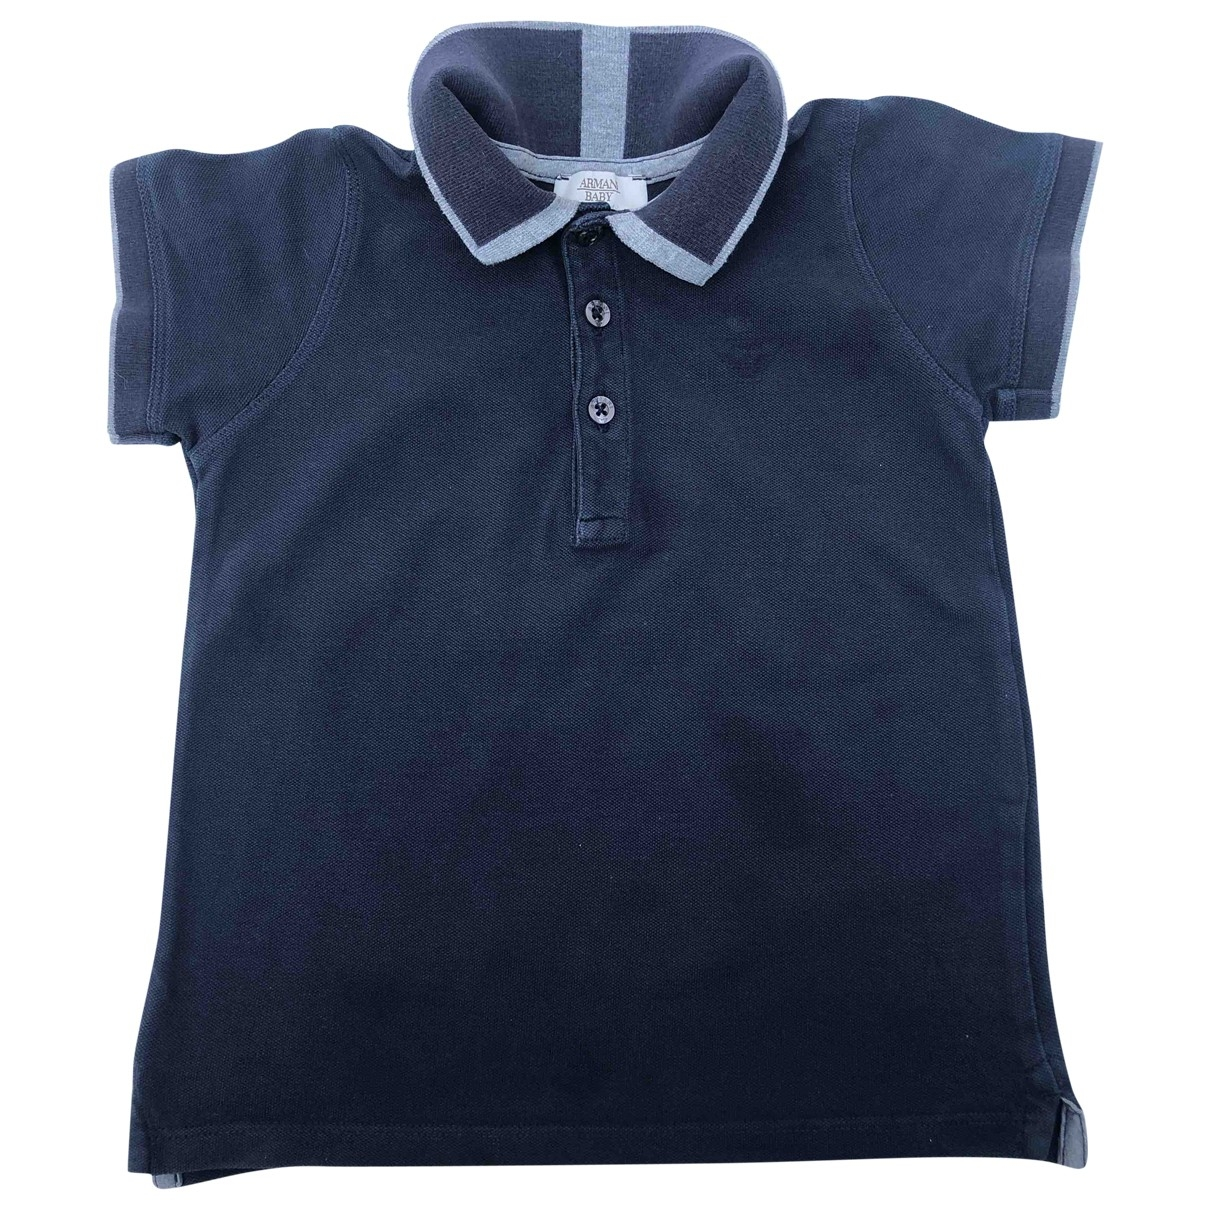 Armani Baby \N Navy Cotton  top for Kids 3 years - until 39 inches UK